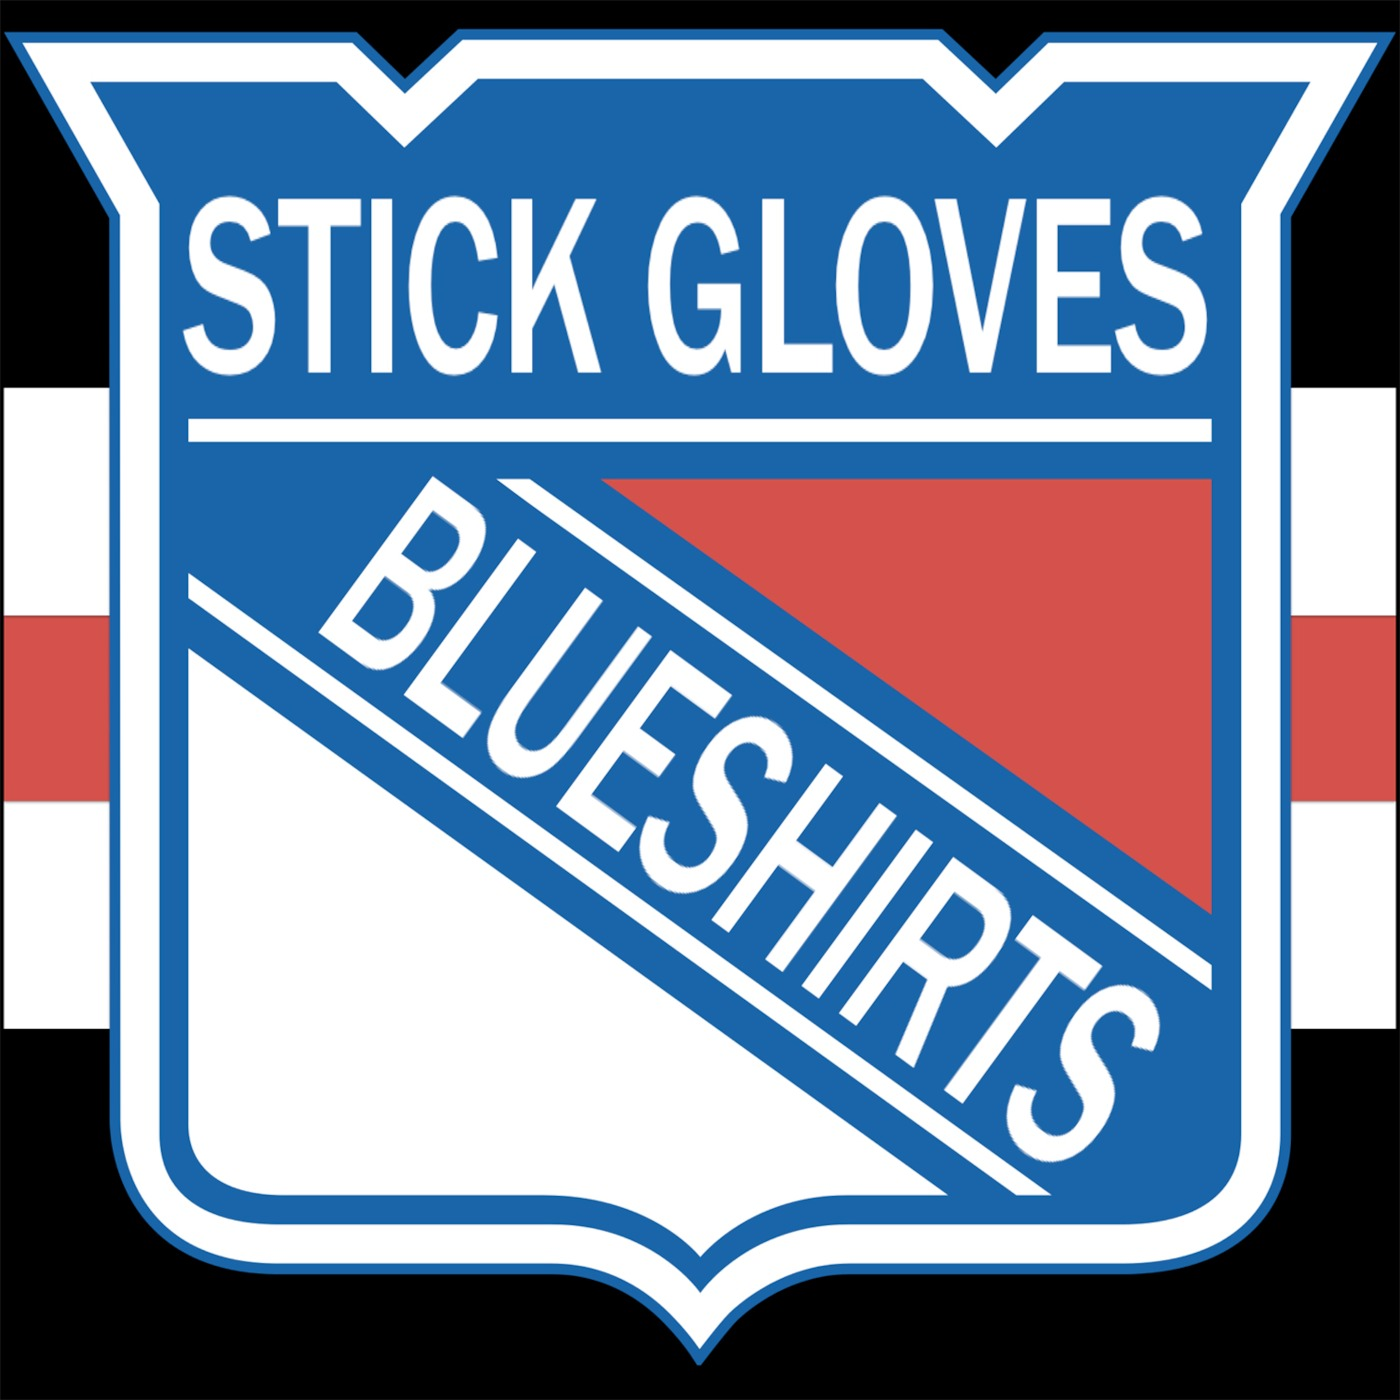 Stick Gloves Blueshirts